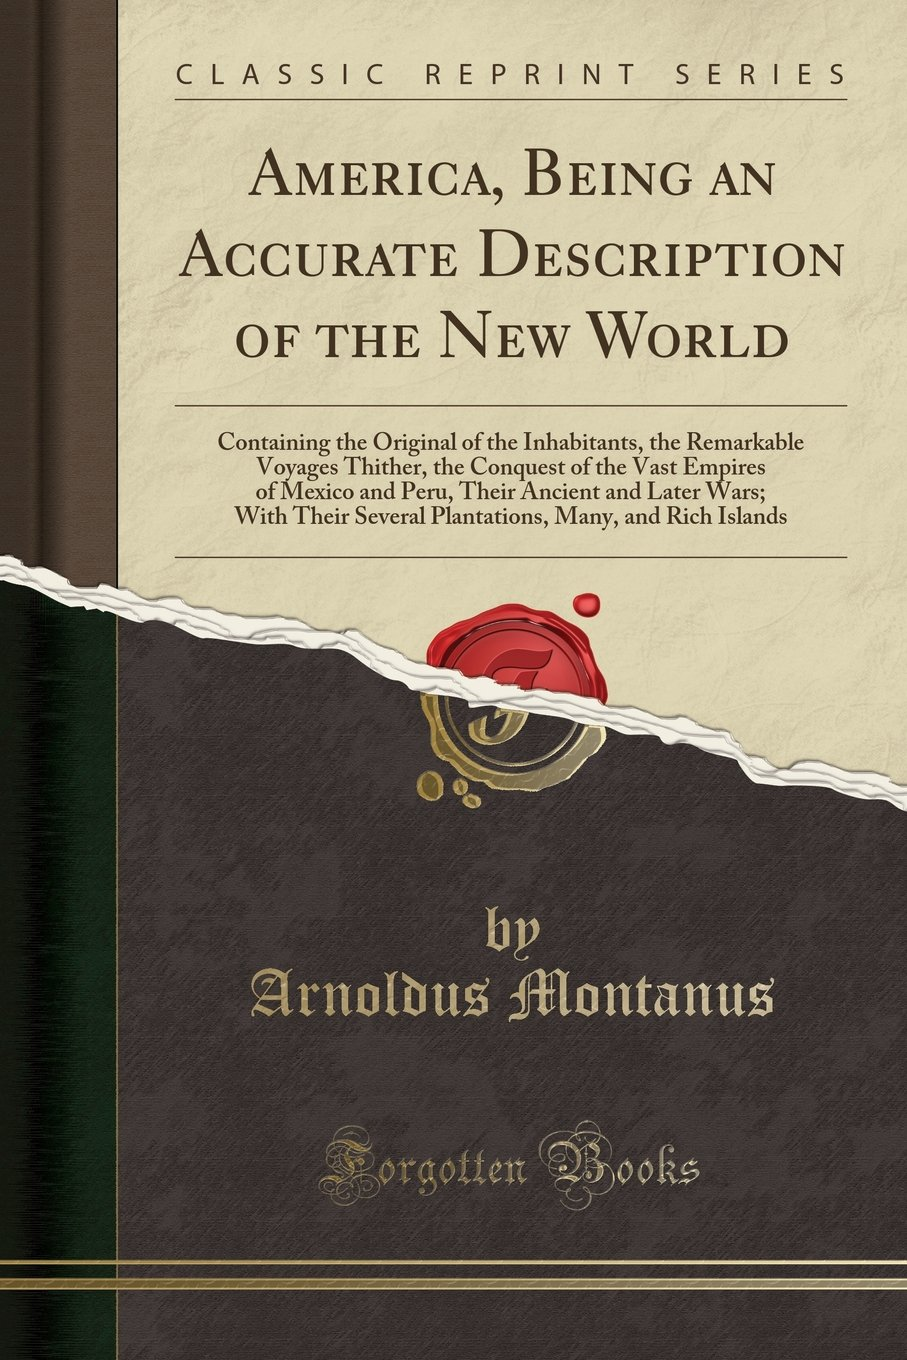 Read Online America, Being an Accurate Description of the New World: Containing the Original of the Inhabitants, the Remarkable Voyages Thither, the Conquest of ... Wars; With Their Several Plantations, Many, a pdf epub